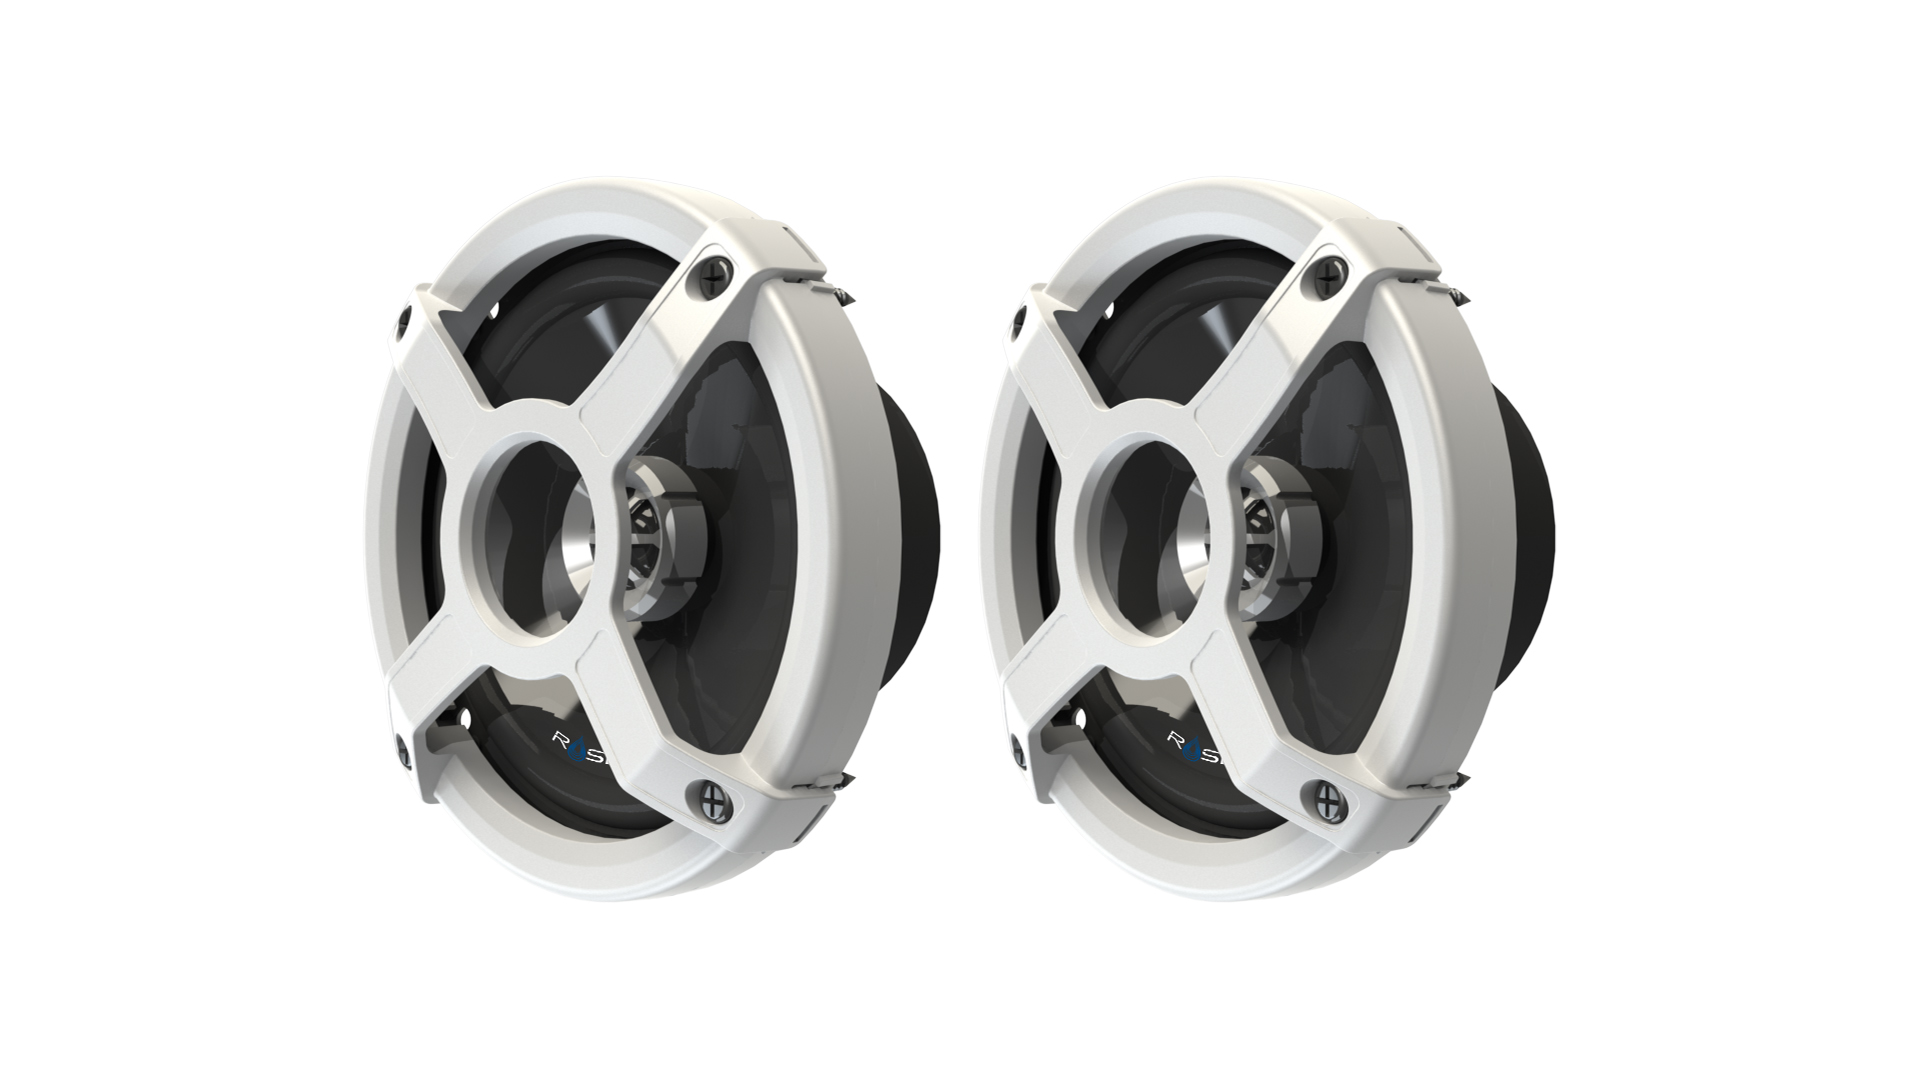 MARINE AUDIO CLASSIC IN-BOAT SPEAKERS - WHITE ROSWELL 2018